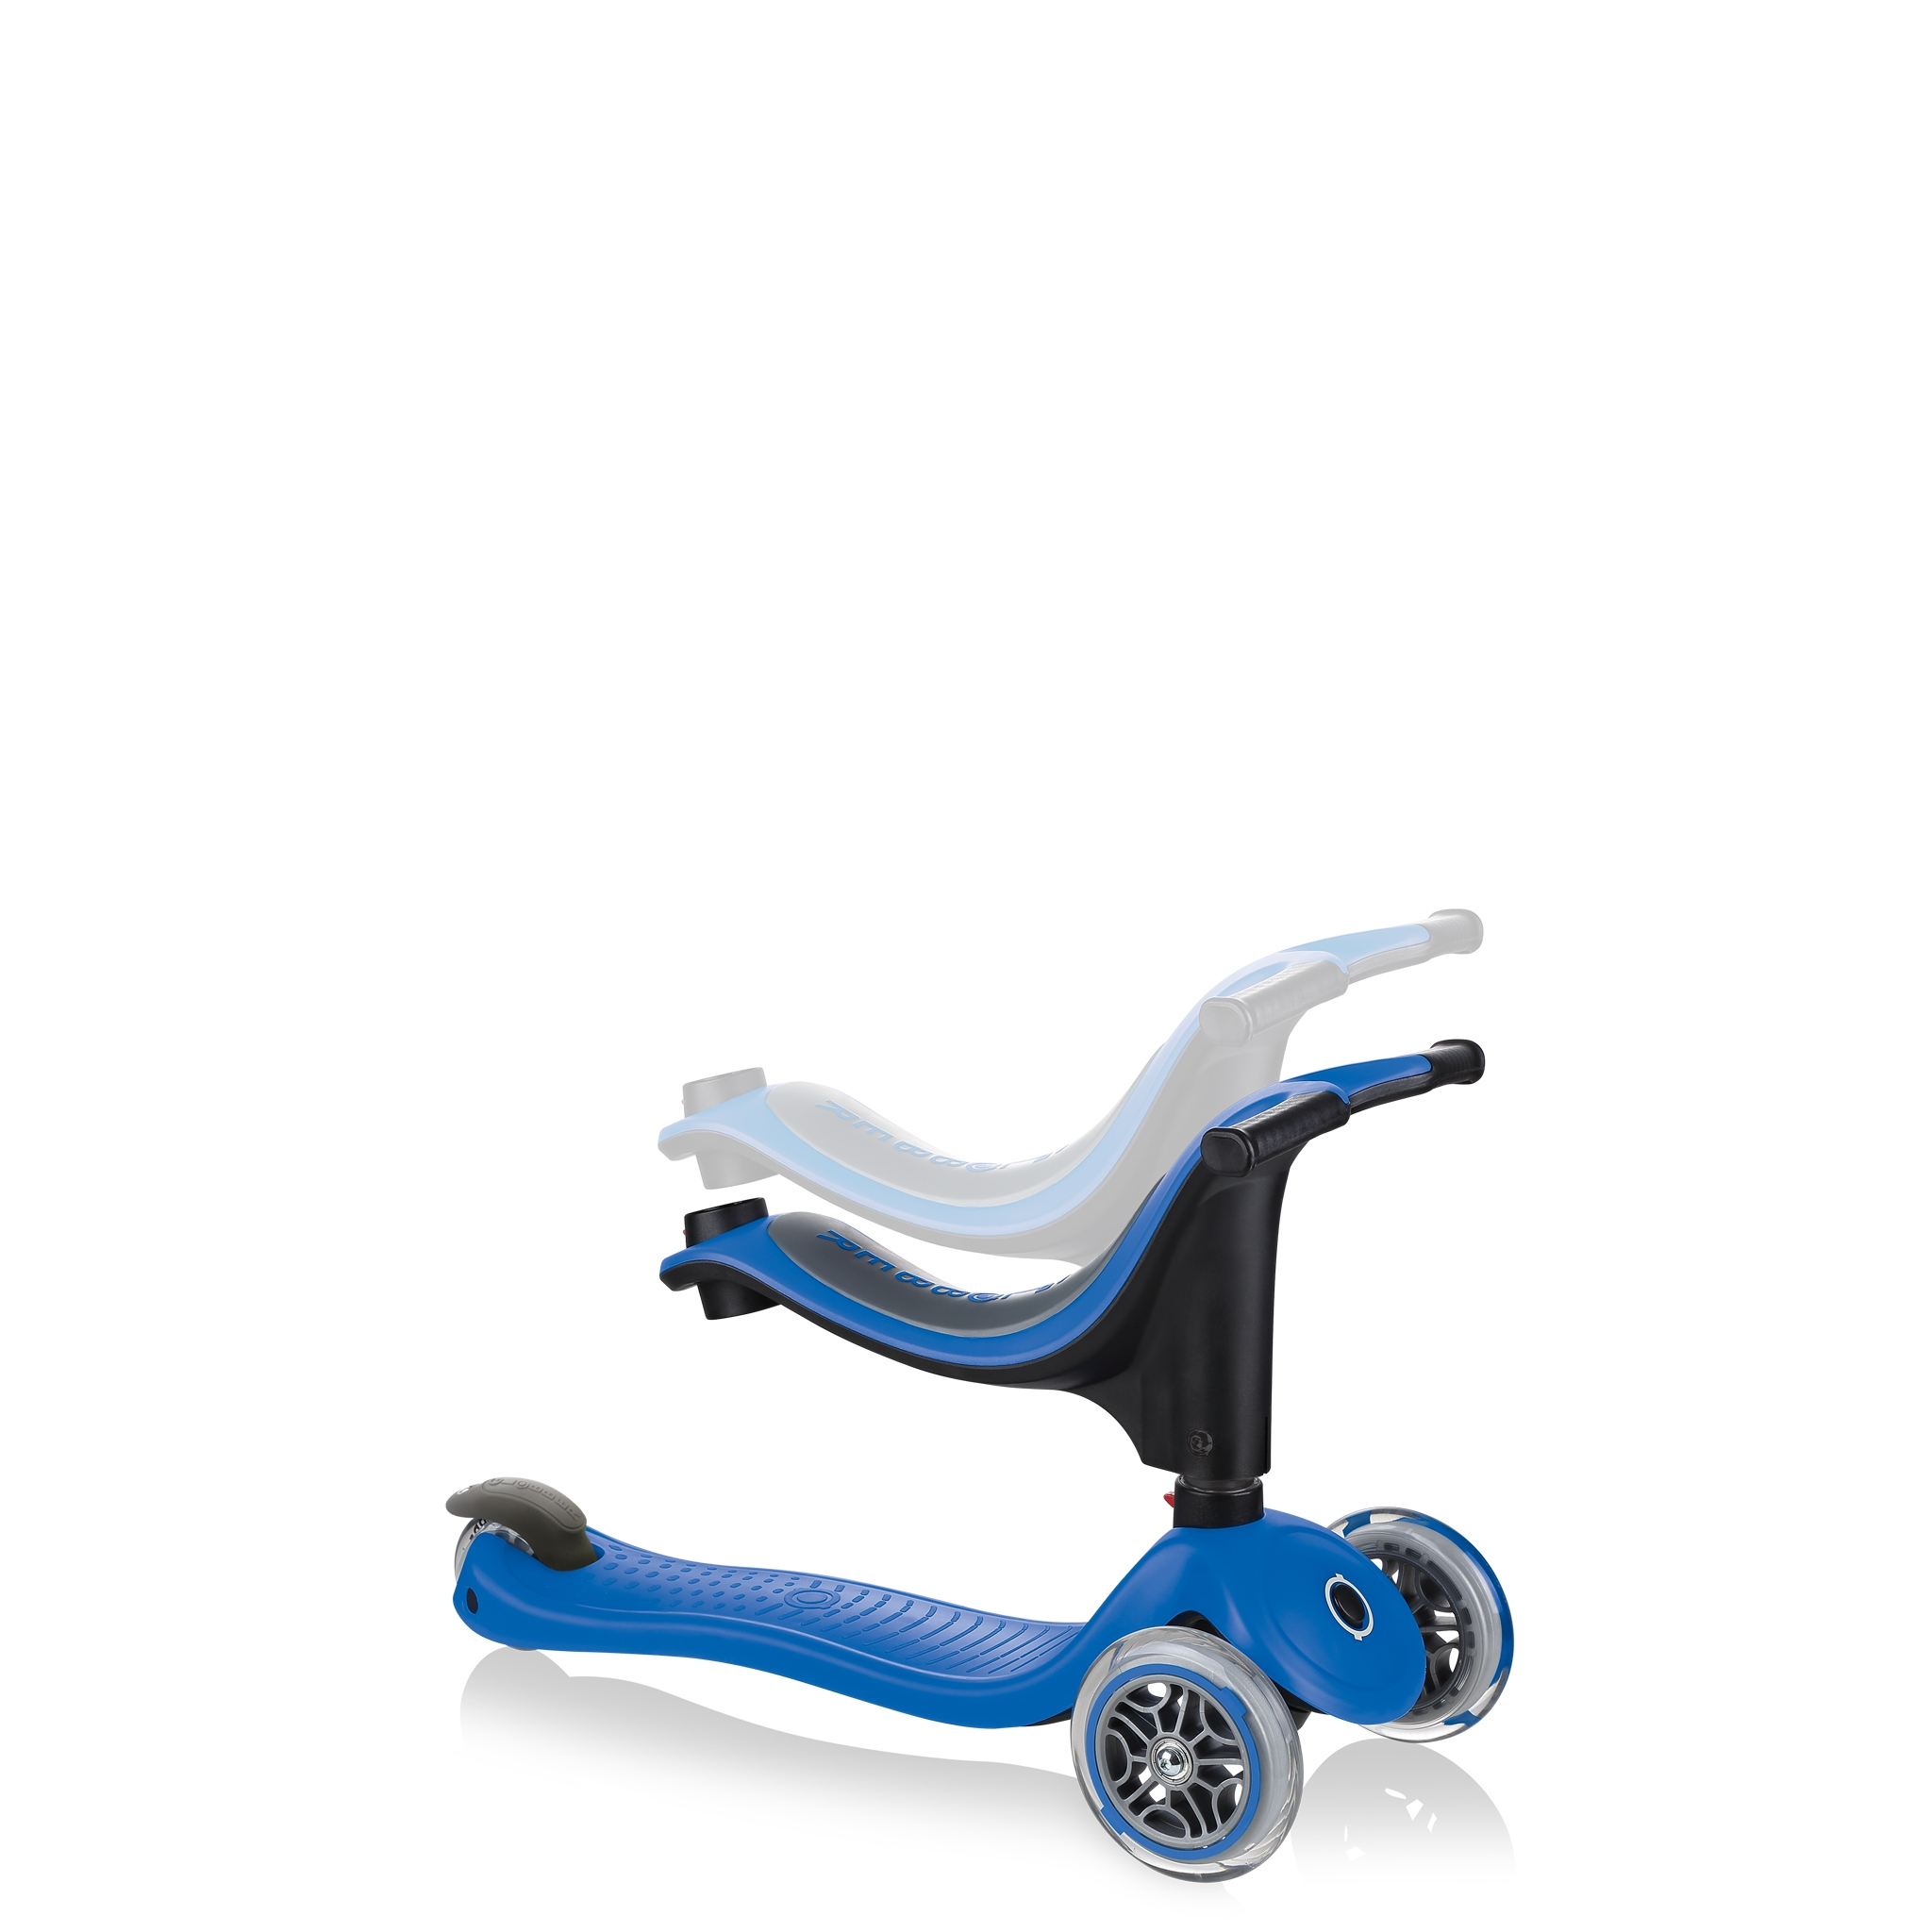 GO-UP-SPORTY-ride-on-walking-bike-scooter-with-adjustable-seat-navy-blue